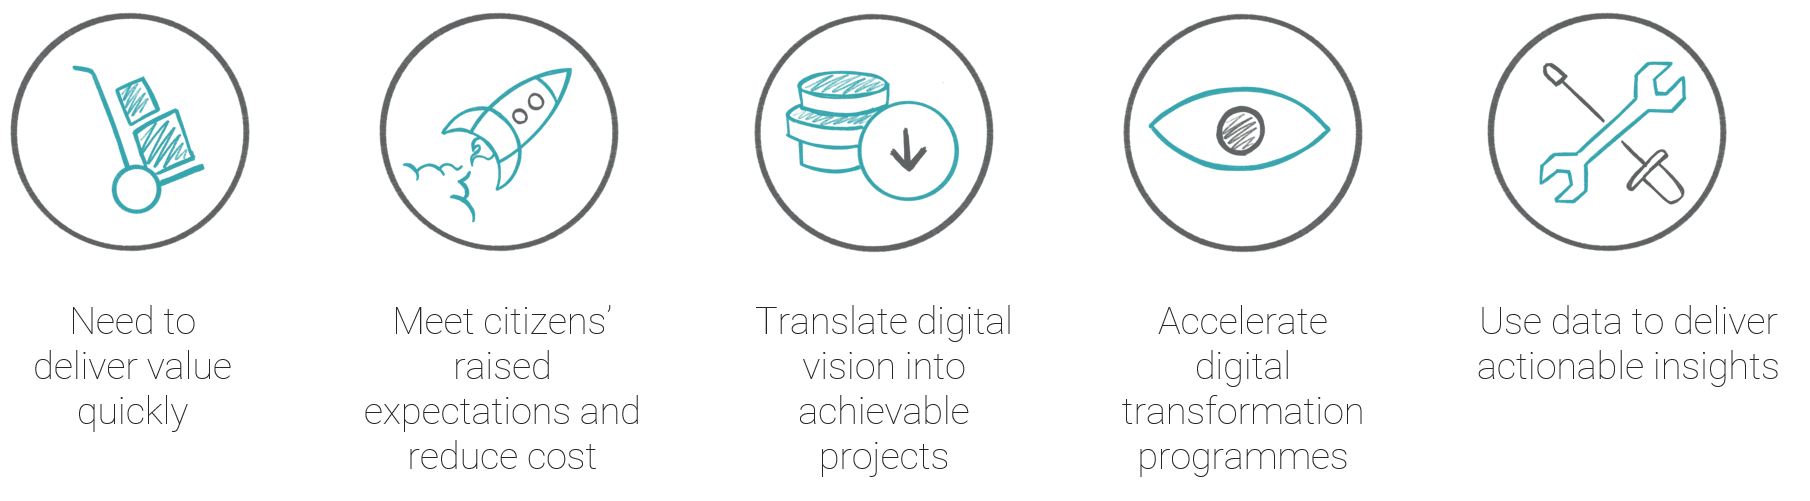 Value, reduce costs, projects, digital transformation and data insights icons